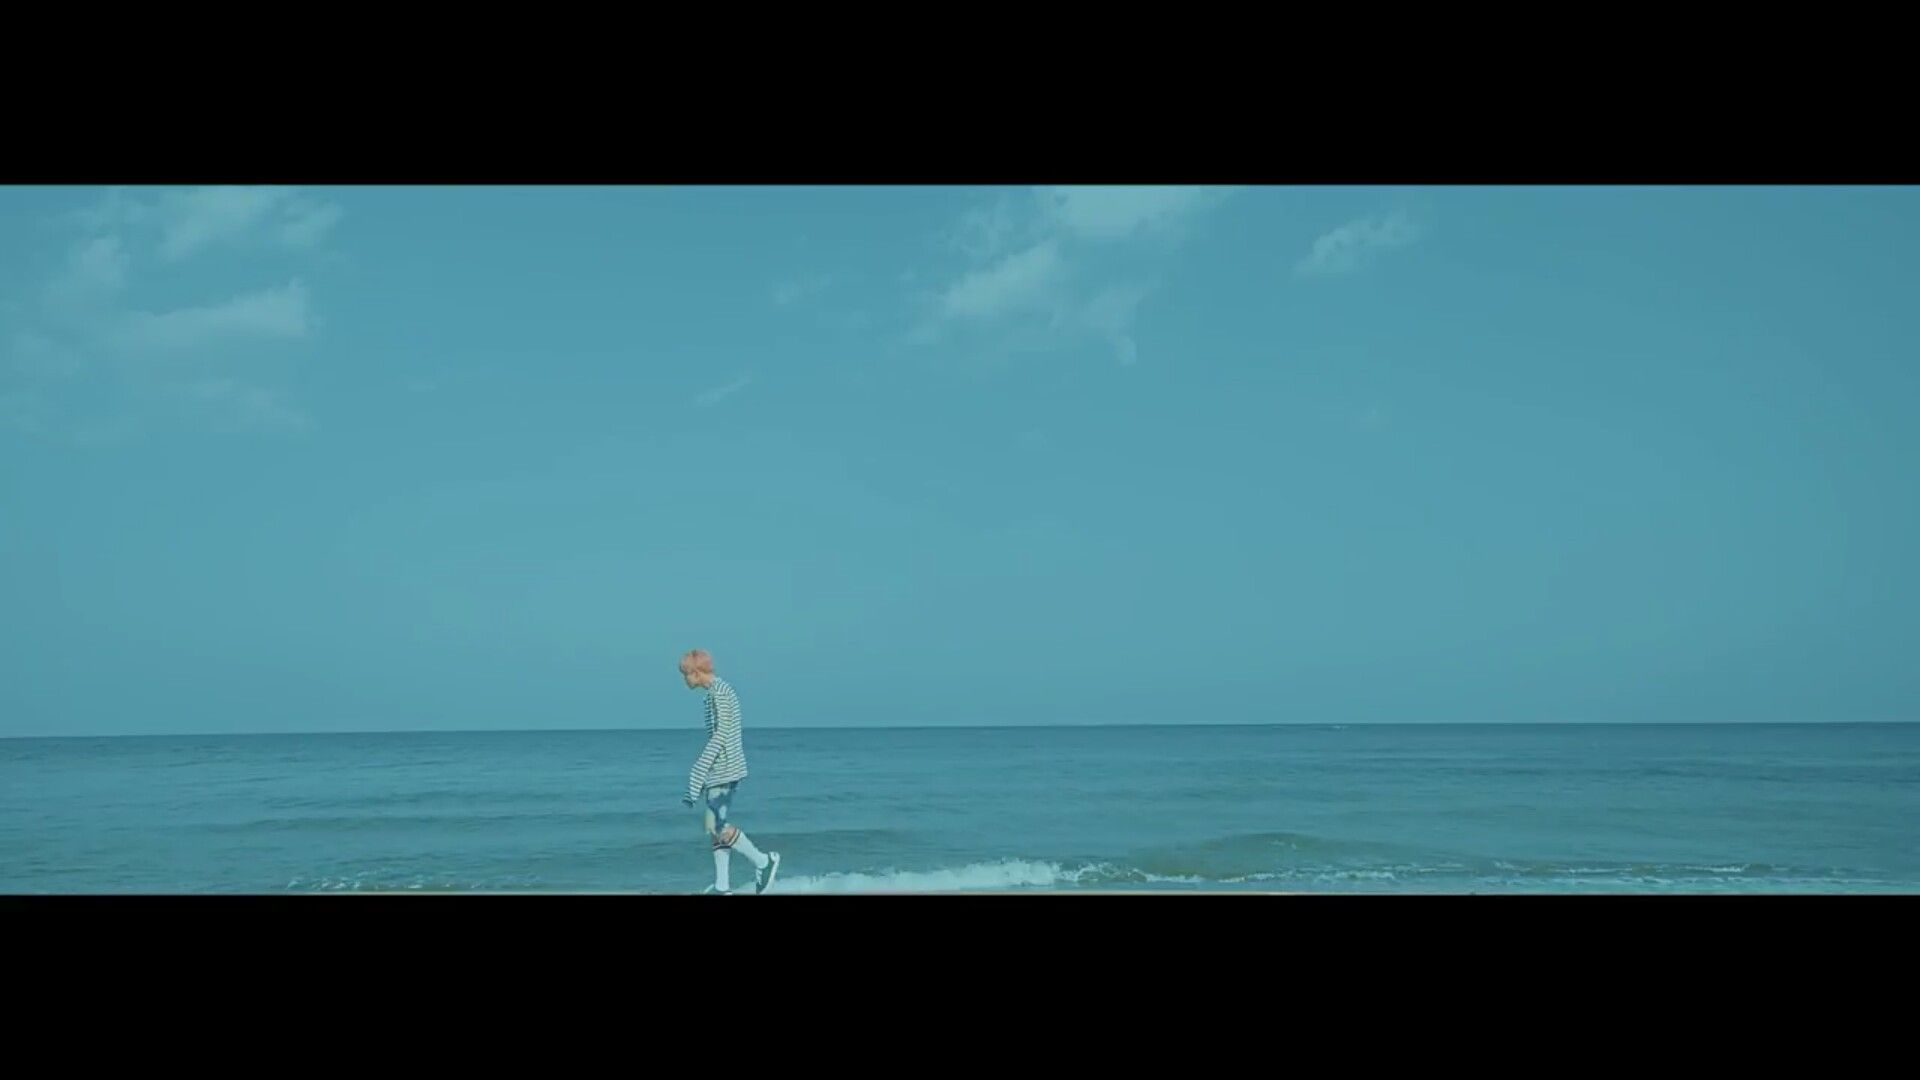 #BTS #YOU_NEVER_WALK_ALONE '봄날 (Spring Day)' MV (https://t.co/EIdsaWH1Fm)  #봄날 #SpringDay